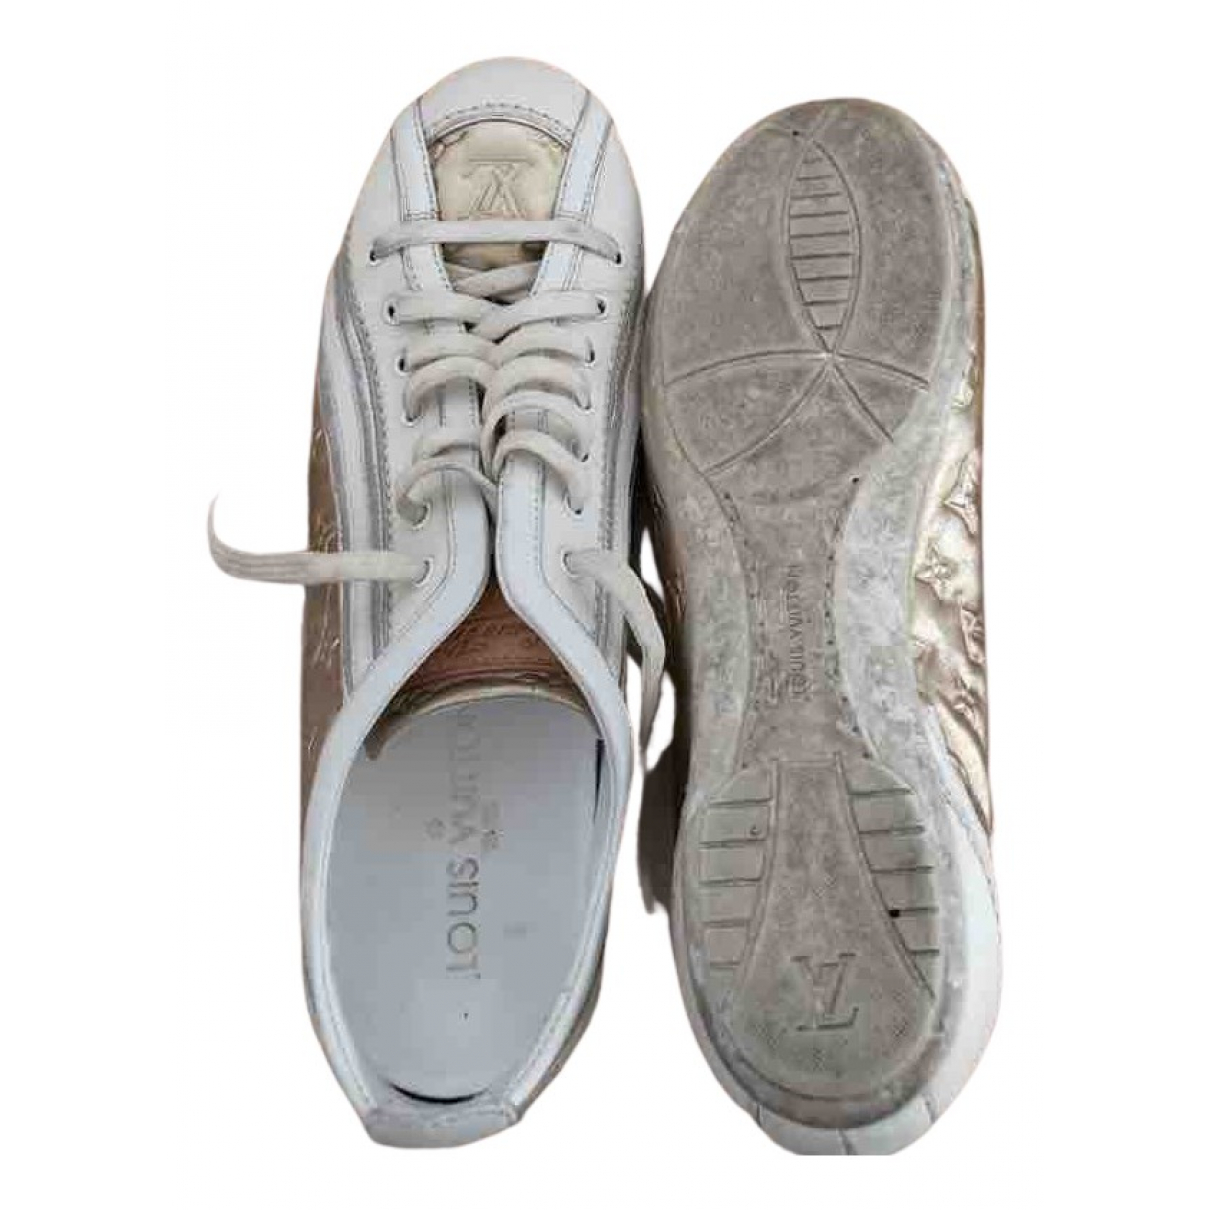 Louis Vuitton \N Sneakers in  Bunt Leder